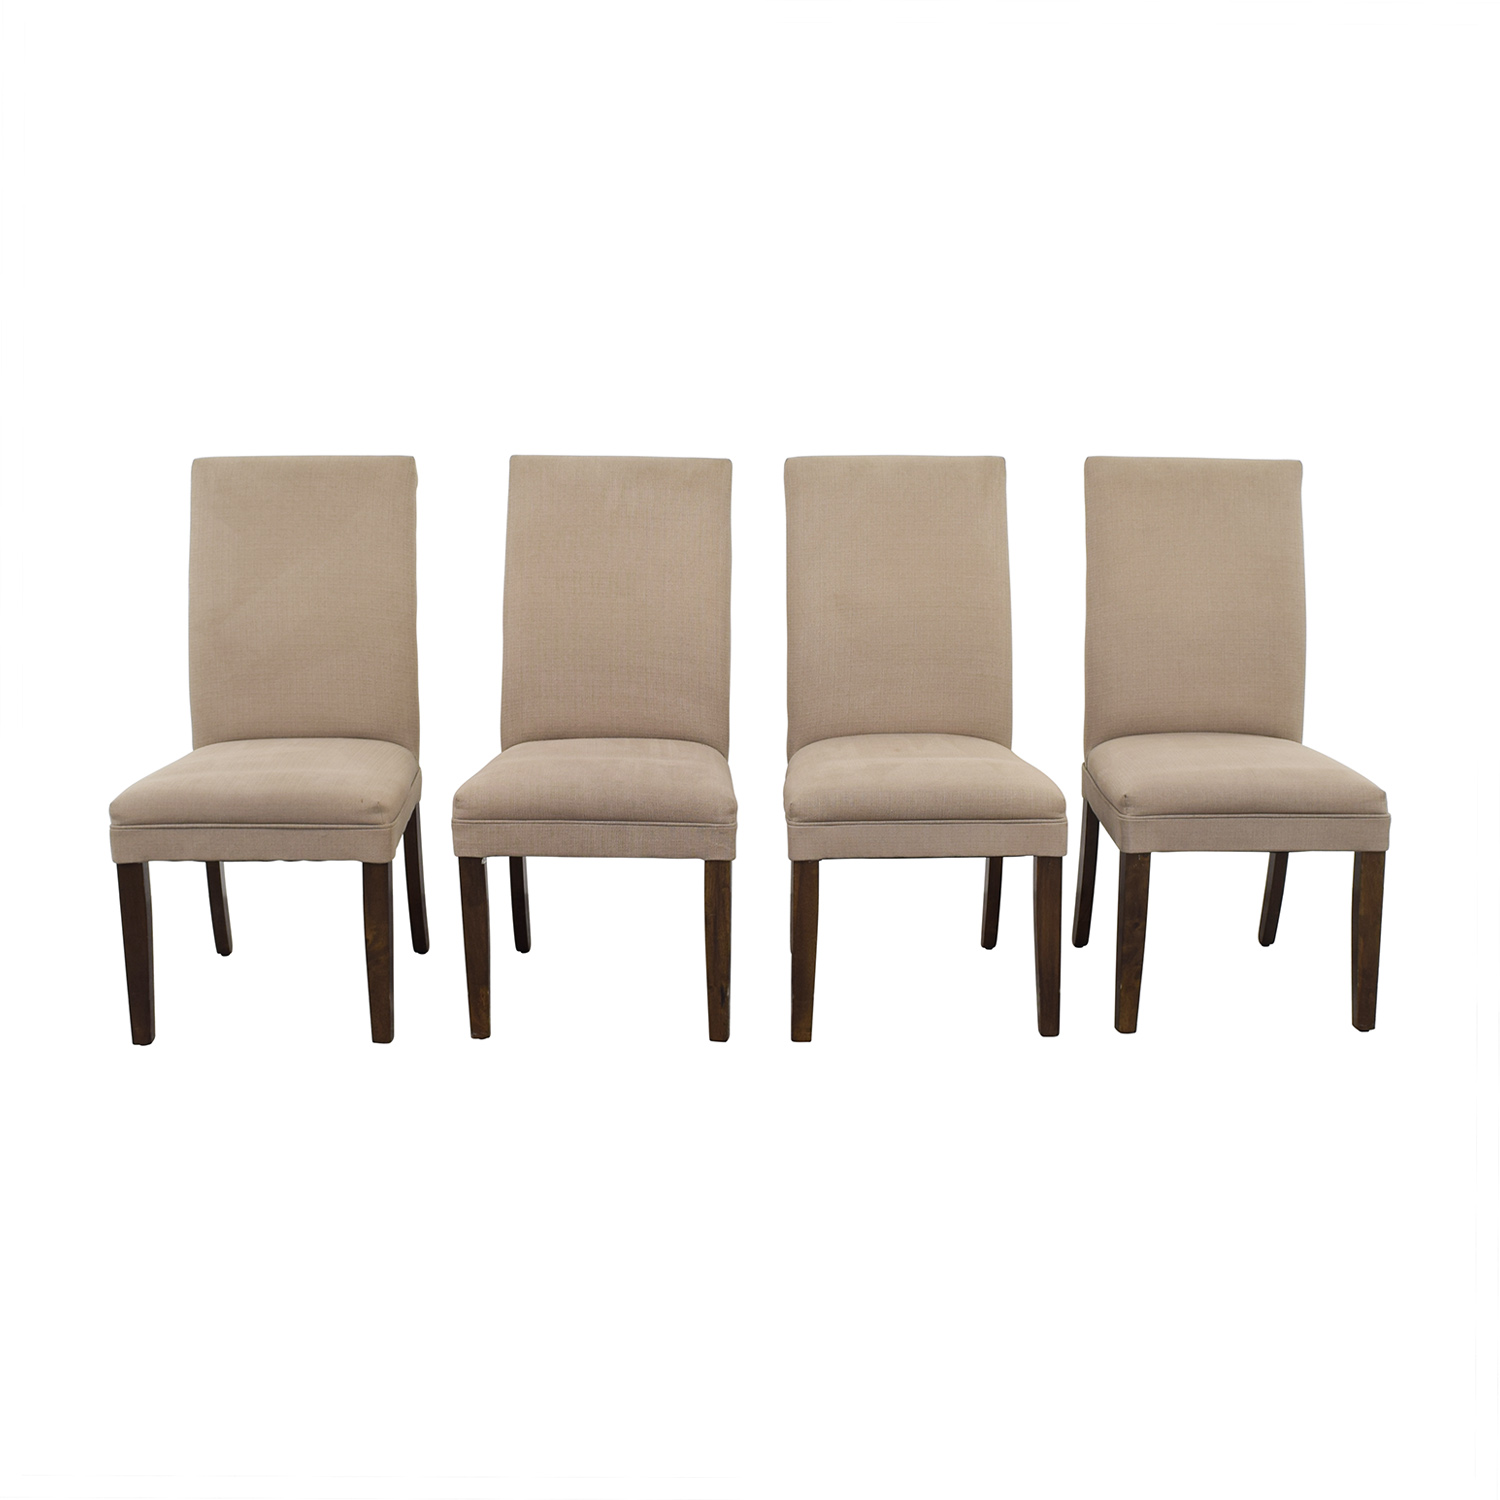 Tan Dining Room Chairs / Chairs